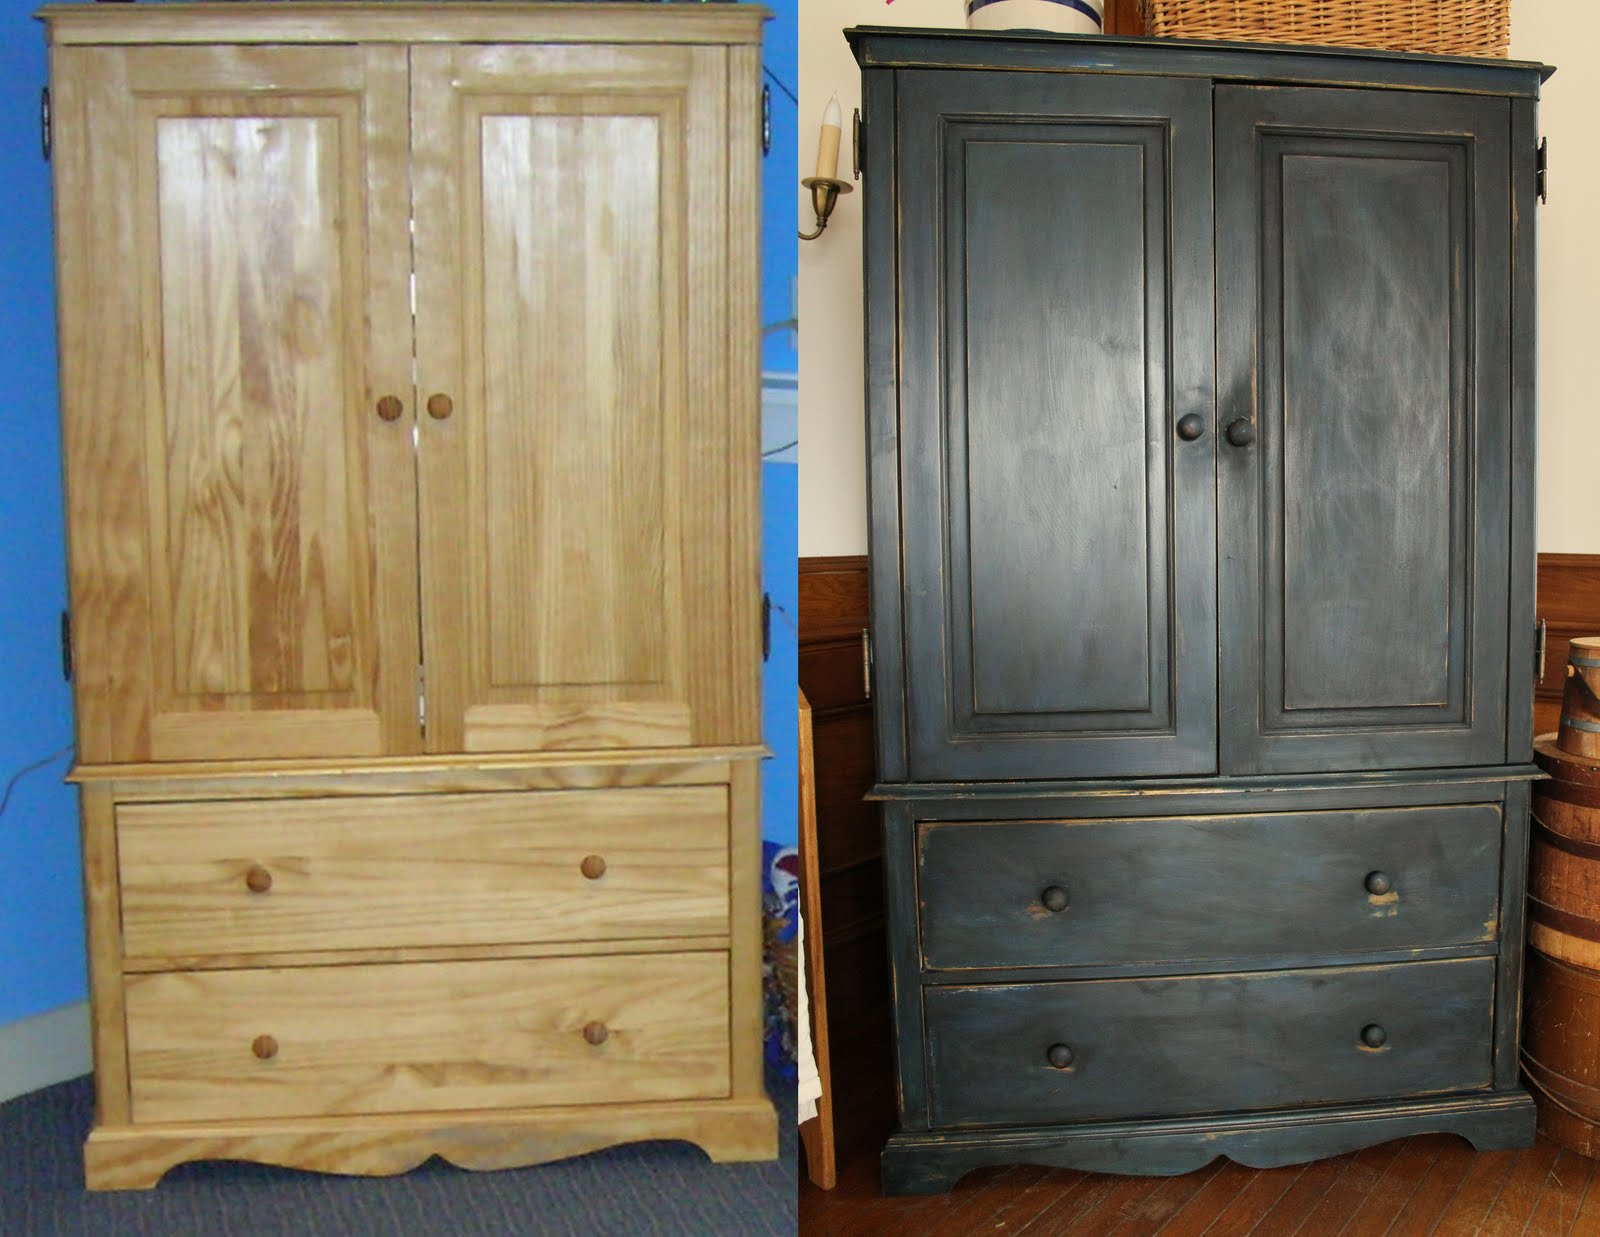 Antiquing wood with paint - Antiquing Furniture Like The Pros